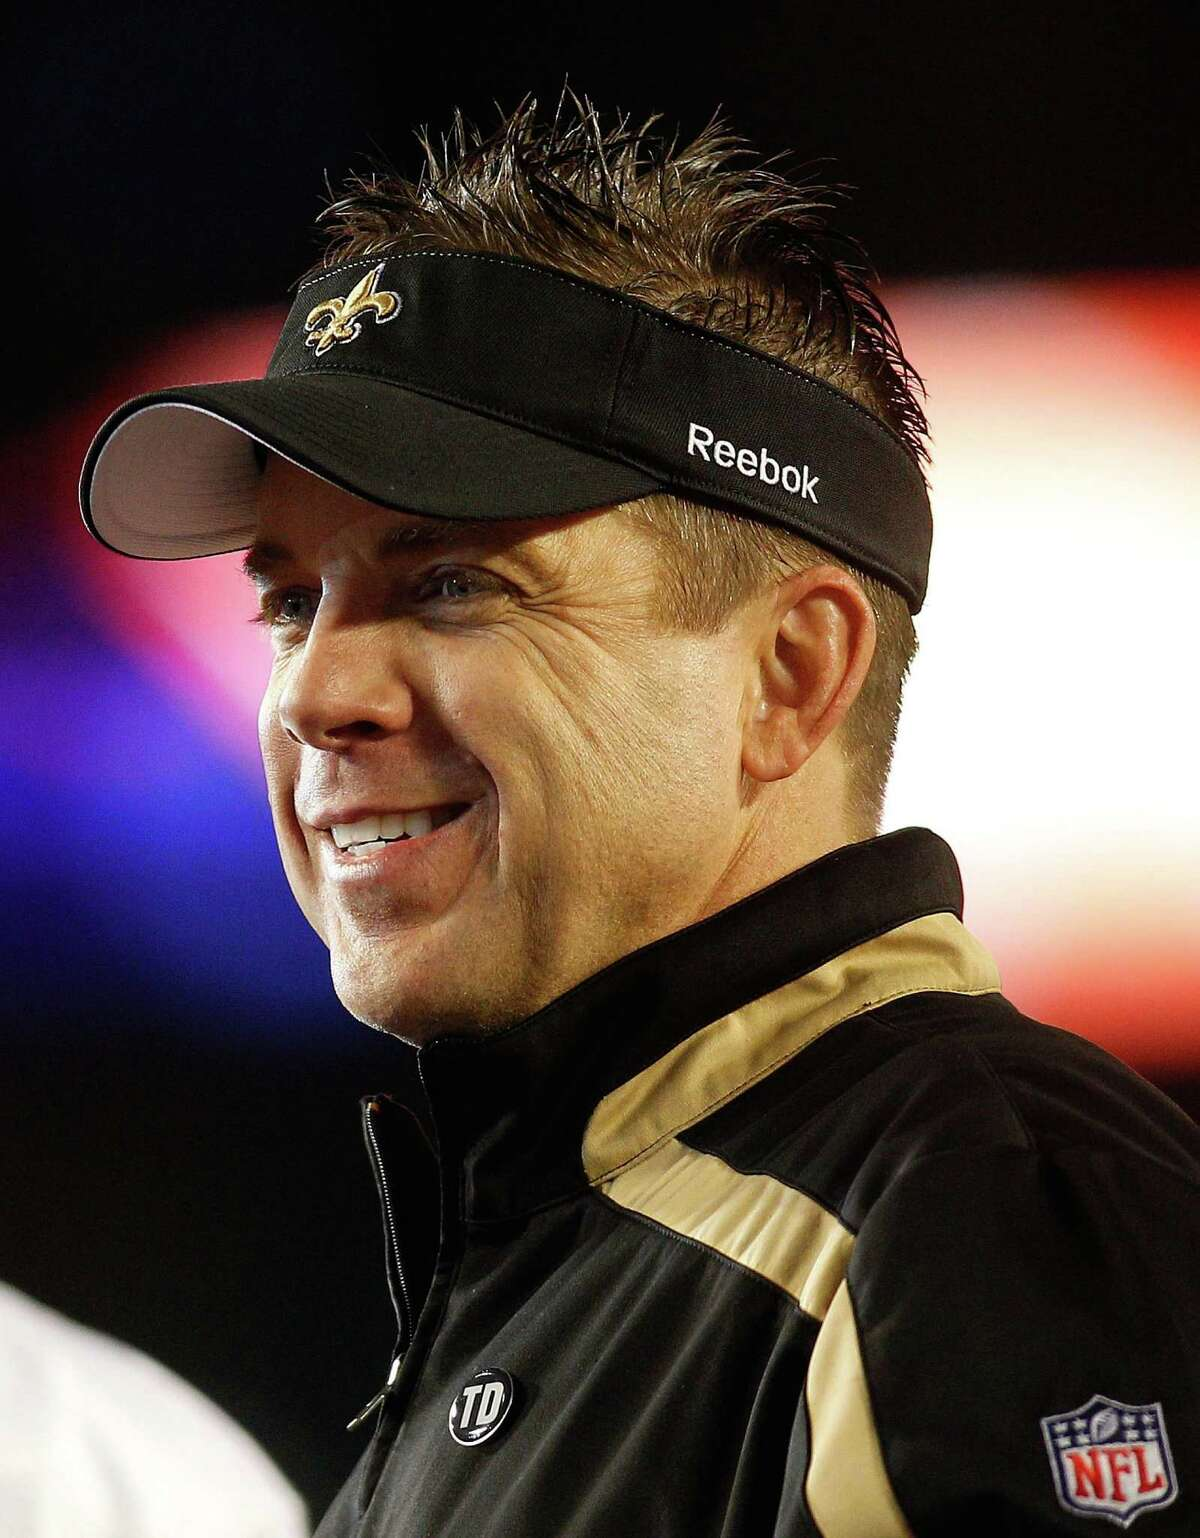 MIAMI GARDENS, FL - FEBRUARY 07: Head coach Sean Payton of the New Orleans Saints smiles after his team defeated the Indianapolis Colts during Super Bowl XLIV on February 7, 2010 at Sun Life Stadium in Miami Gardens, Florida. (Photo by Chris Graythen/Getty Images)